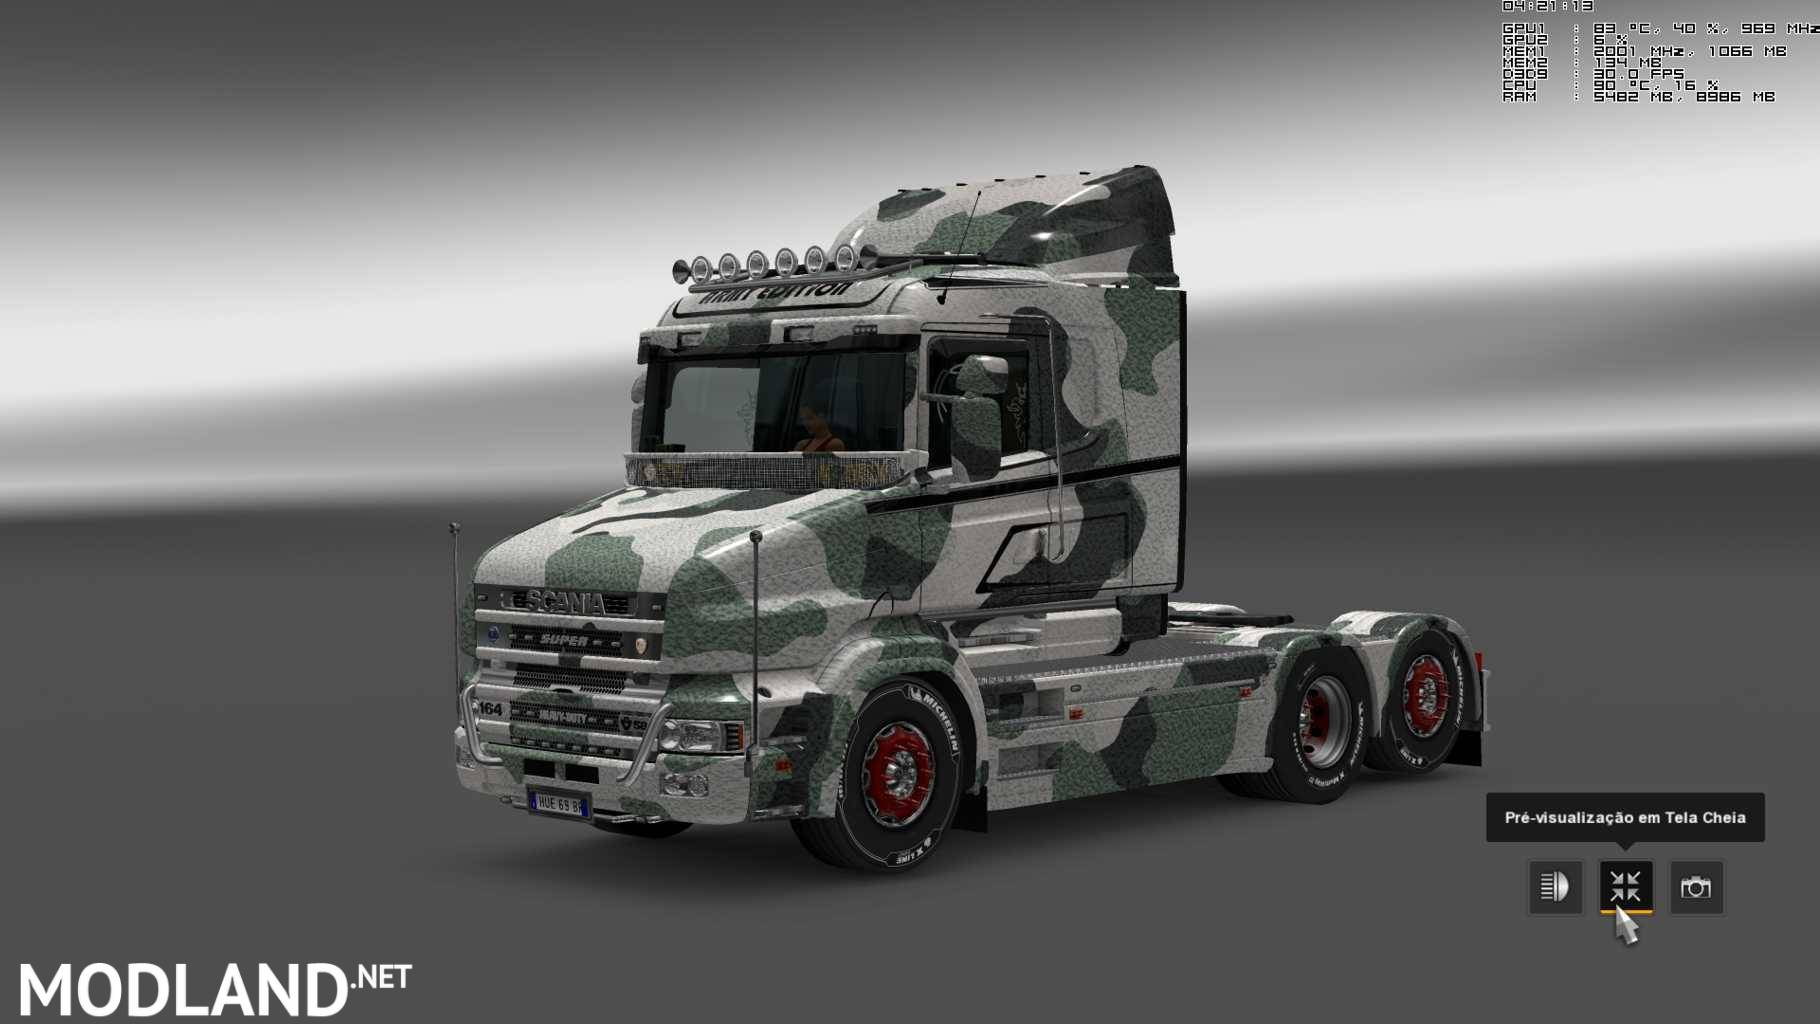 military camo paint job for rjl scanias t  t4  r  r4 mod for